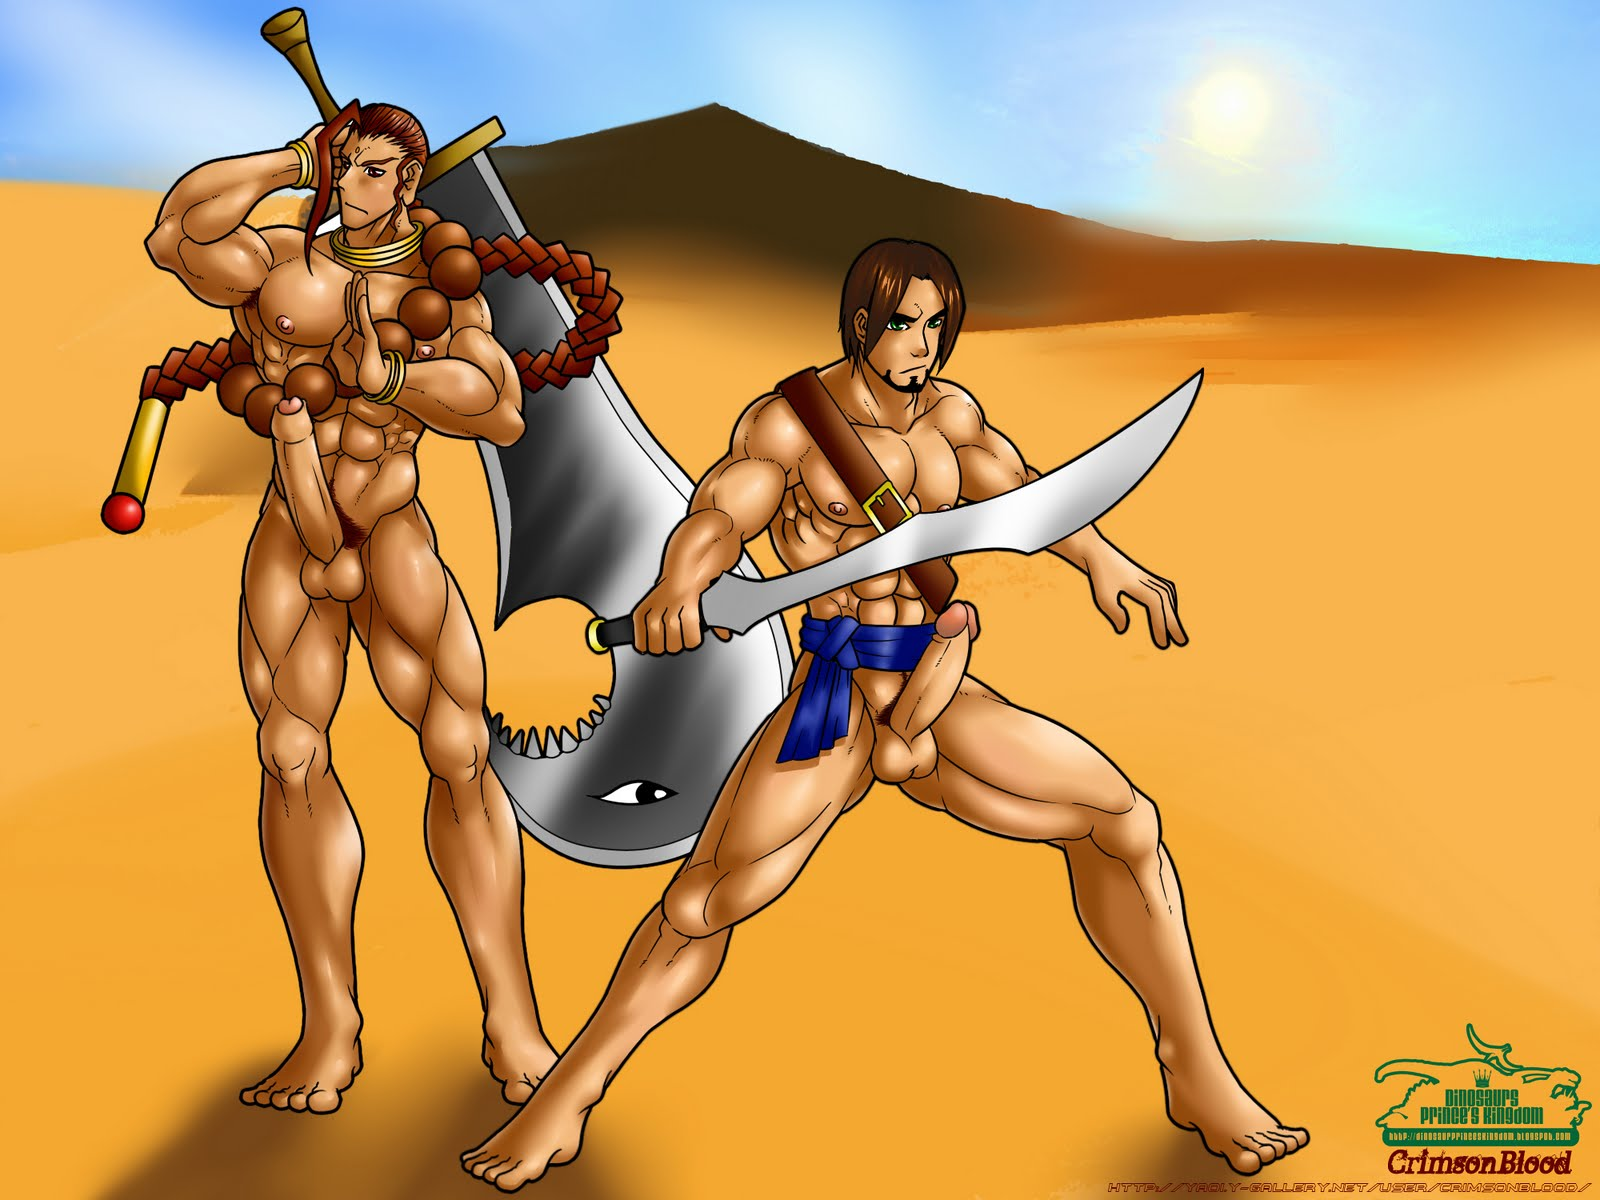 Prince of persia 3d xxx adult video